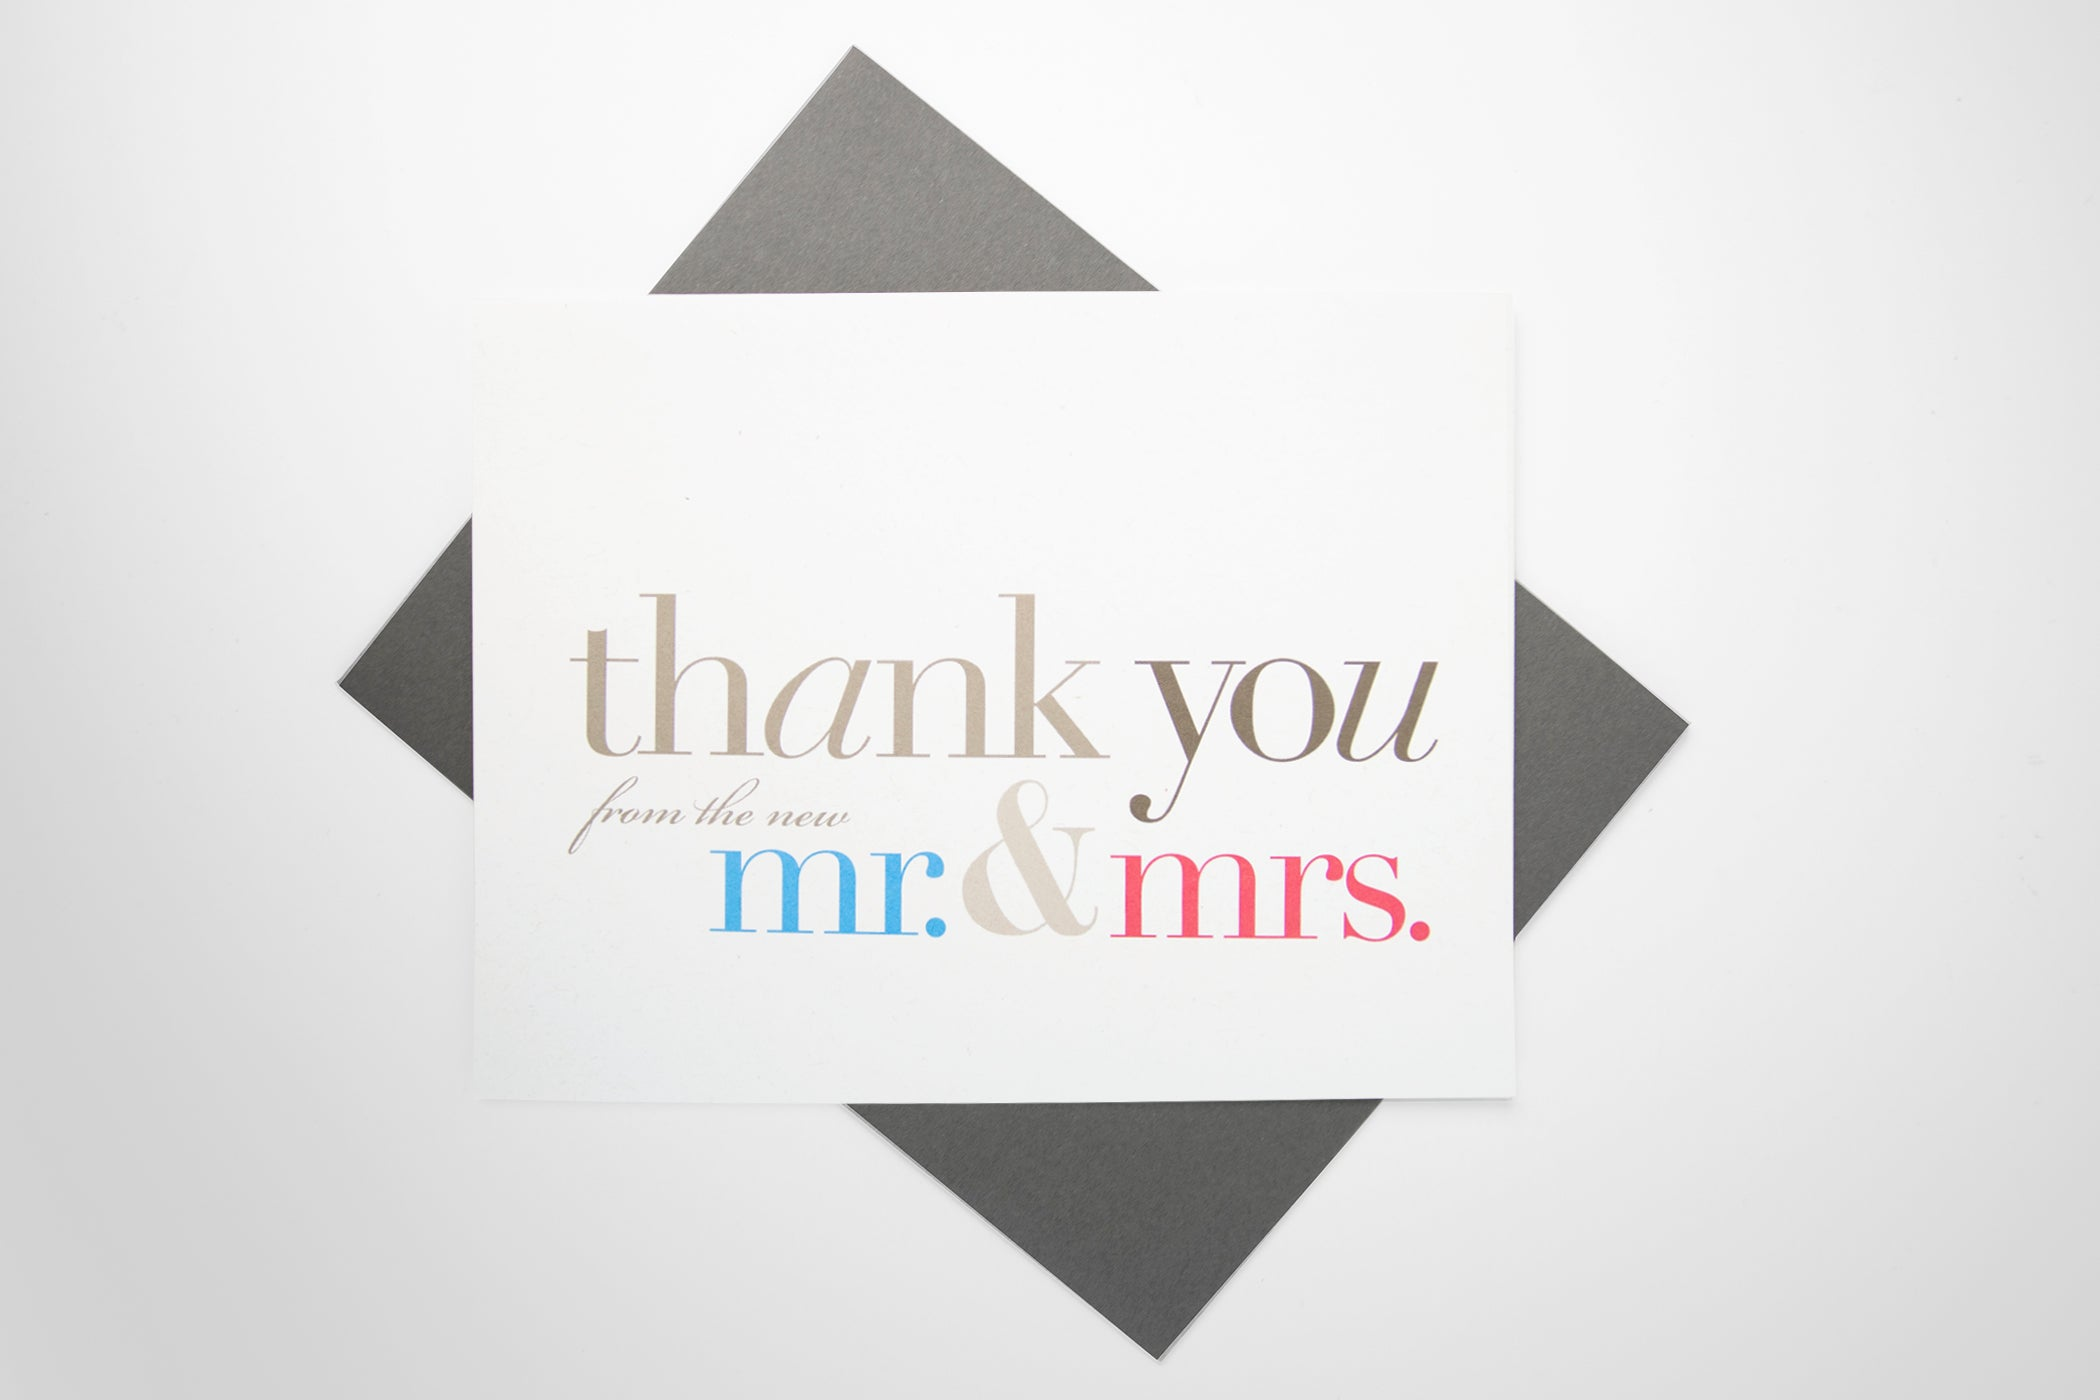 Thank You (from the new Mr. & Mrs.) Card